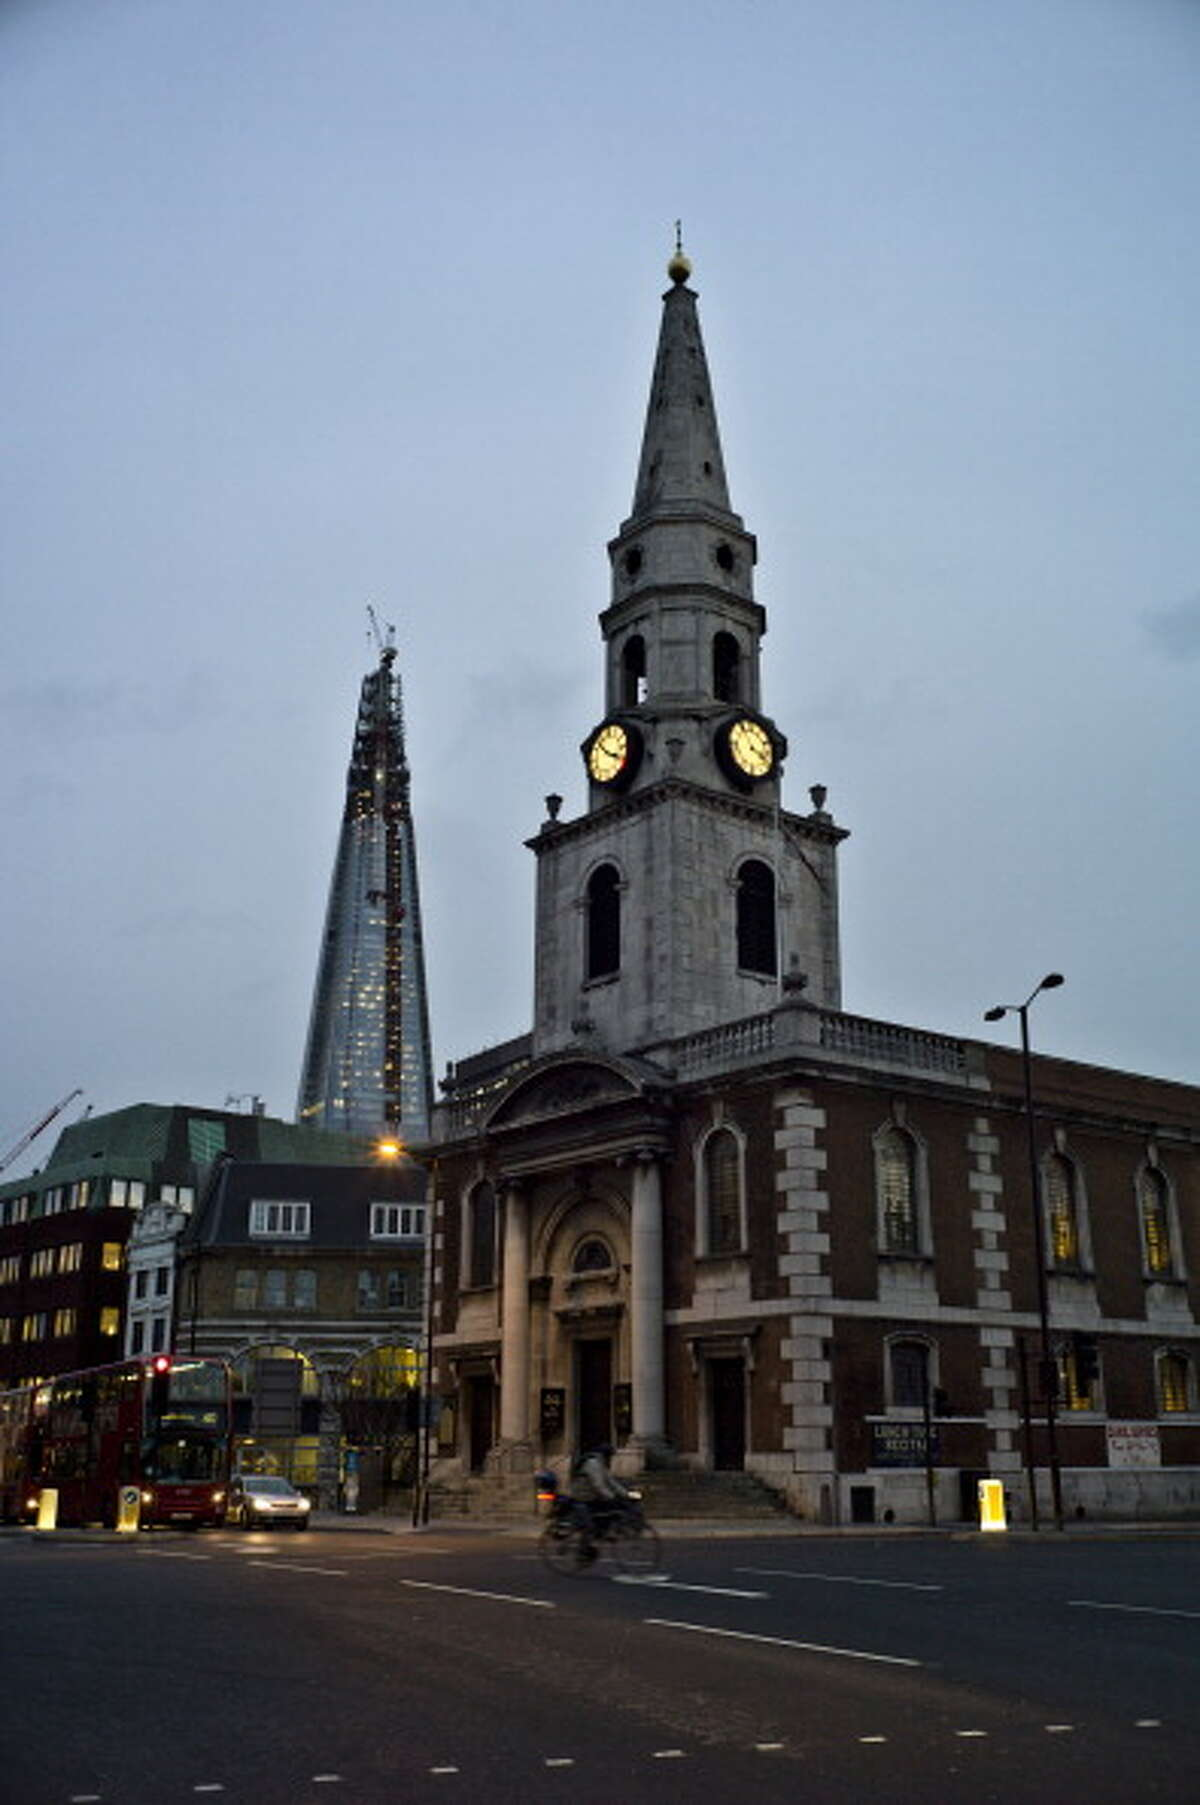 The bell at St. George the Martyr church (pictured) in south London rang for 24 hours earlier this week, driving locals crazy.